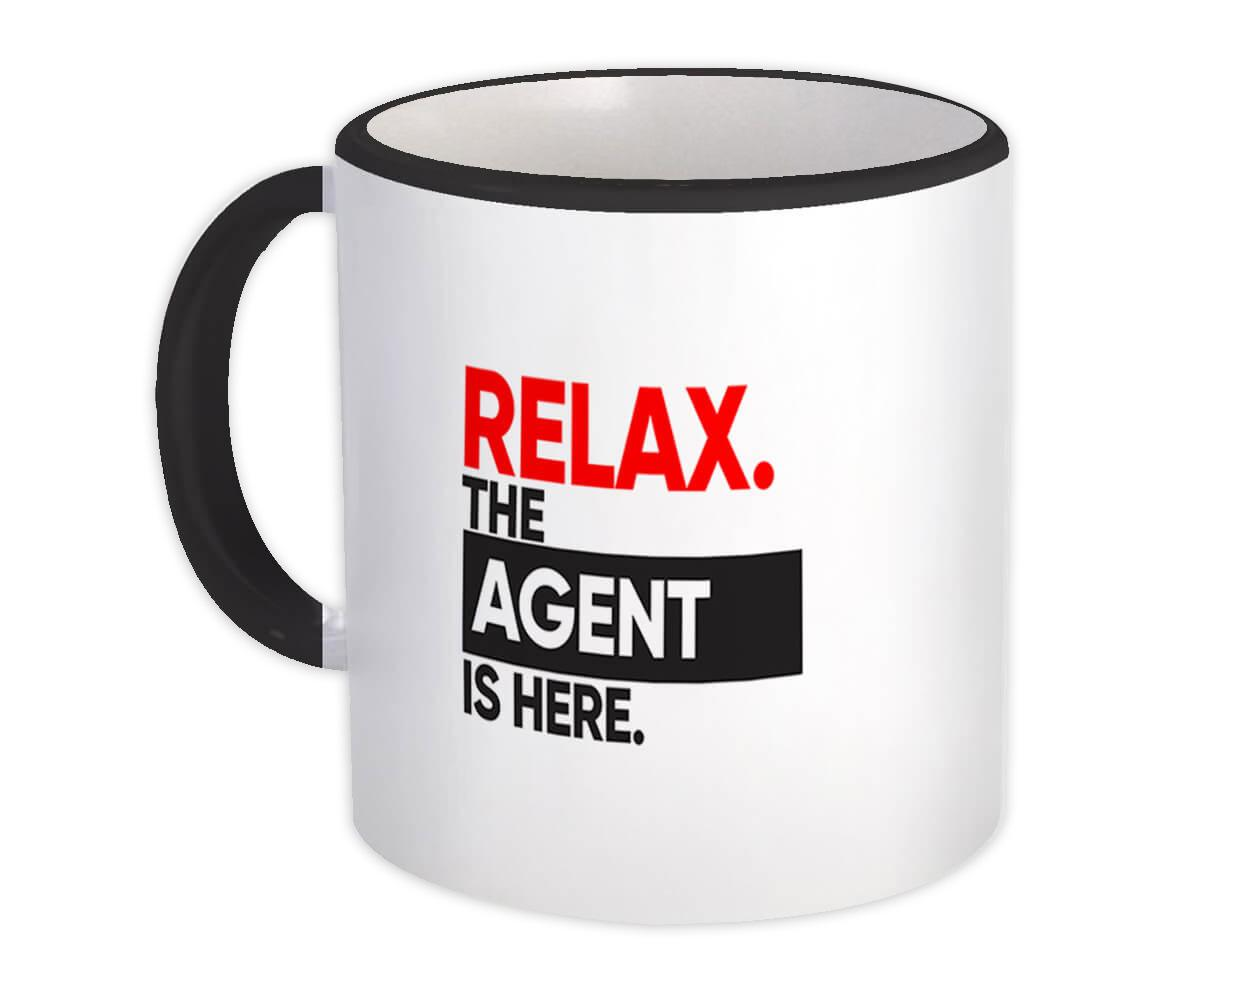 Relax The AGENT is here : Gift Mug Occupation Profession Work Office